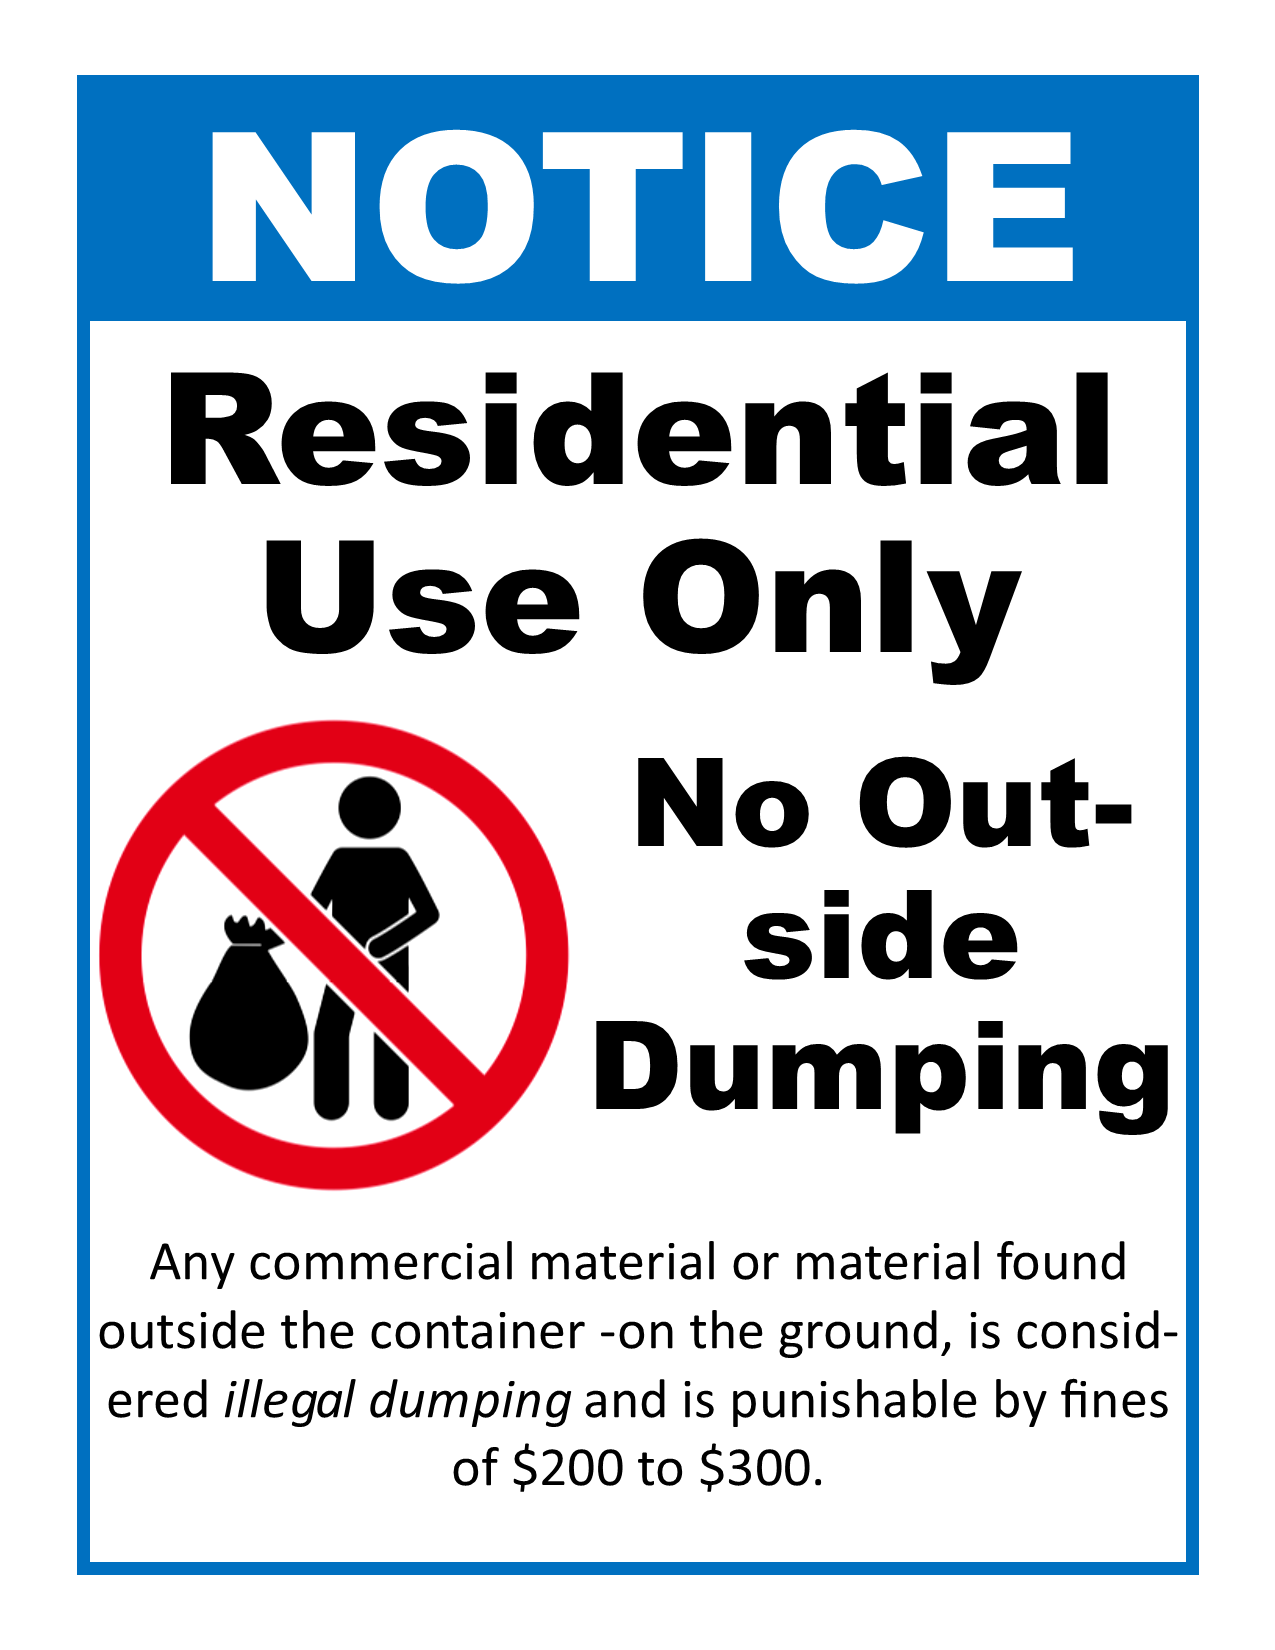 Recycling Dumpster Sign - Residential Use Only, No Illegal Dumping